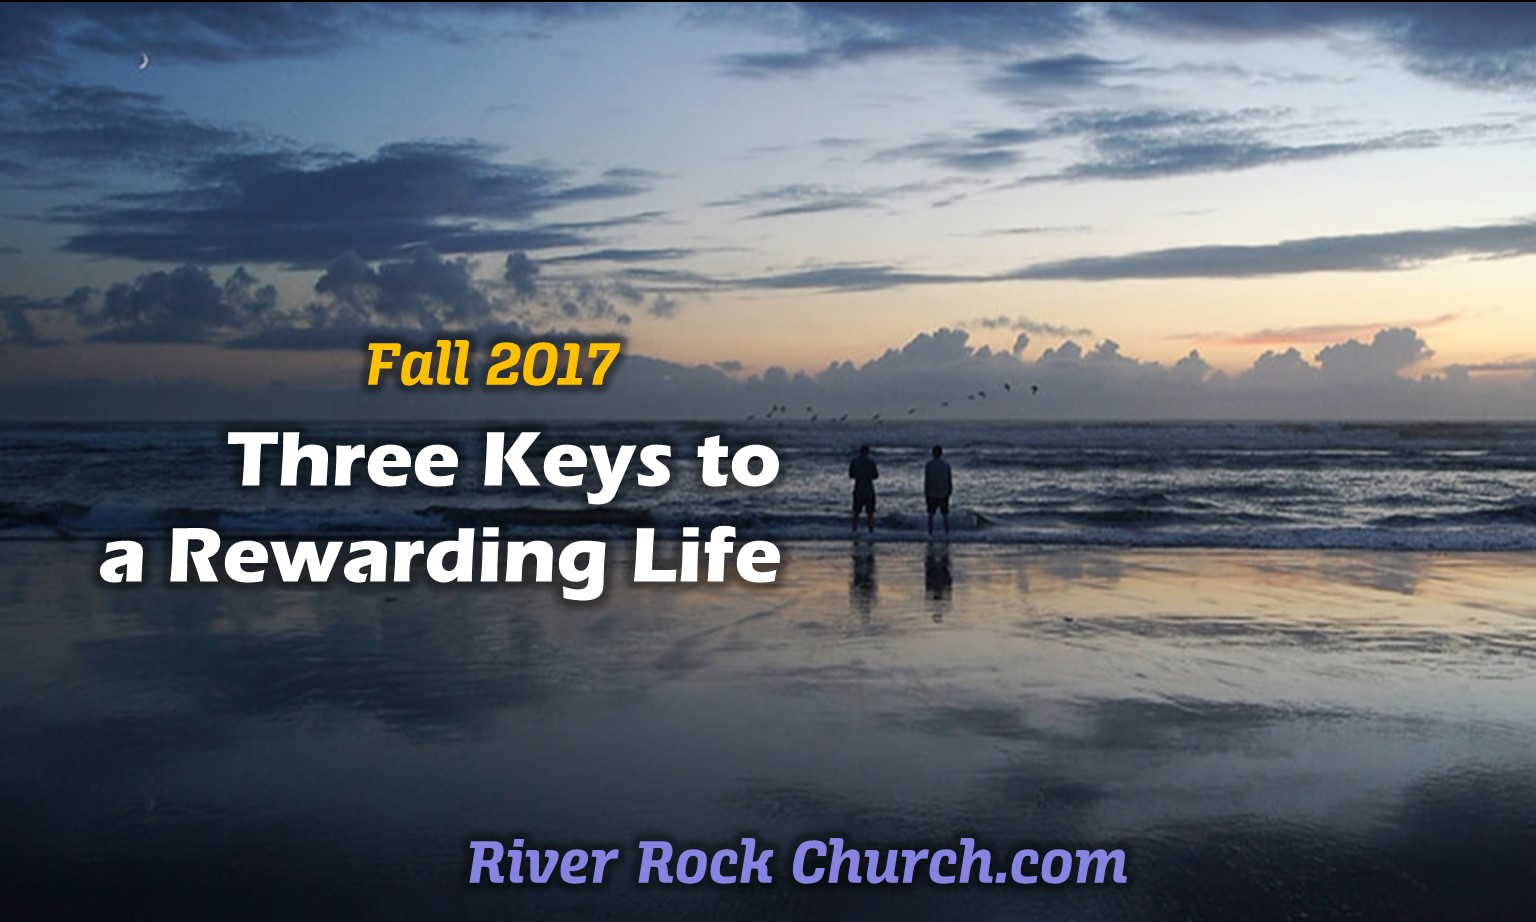 Three Keys to a Rewarding Life